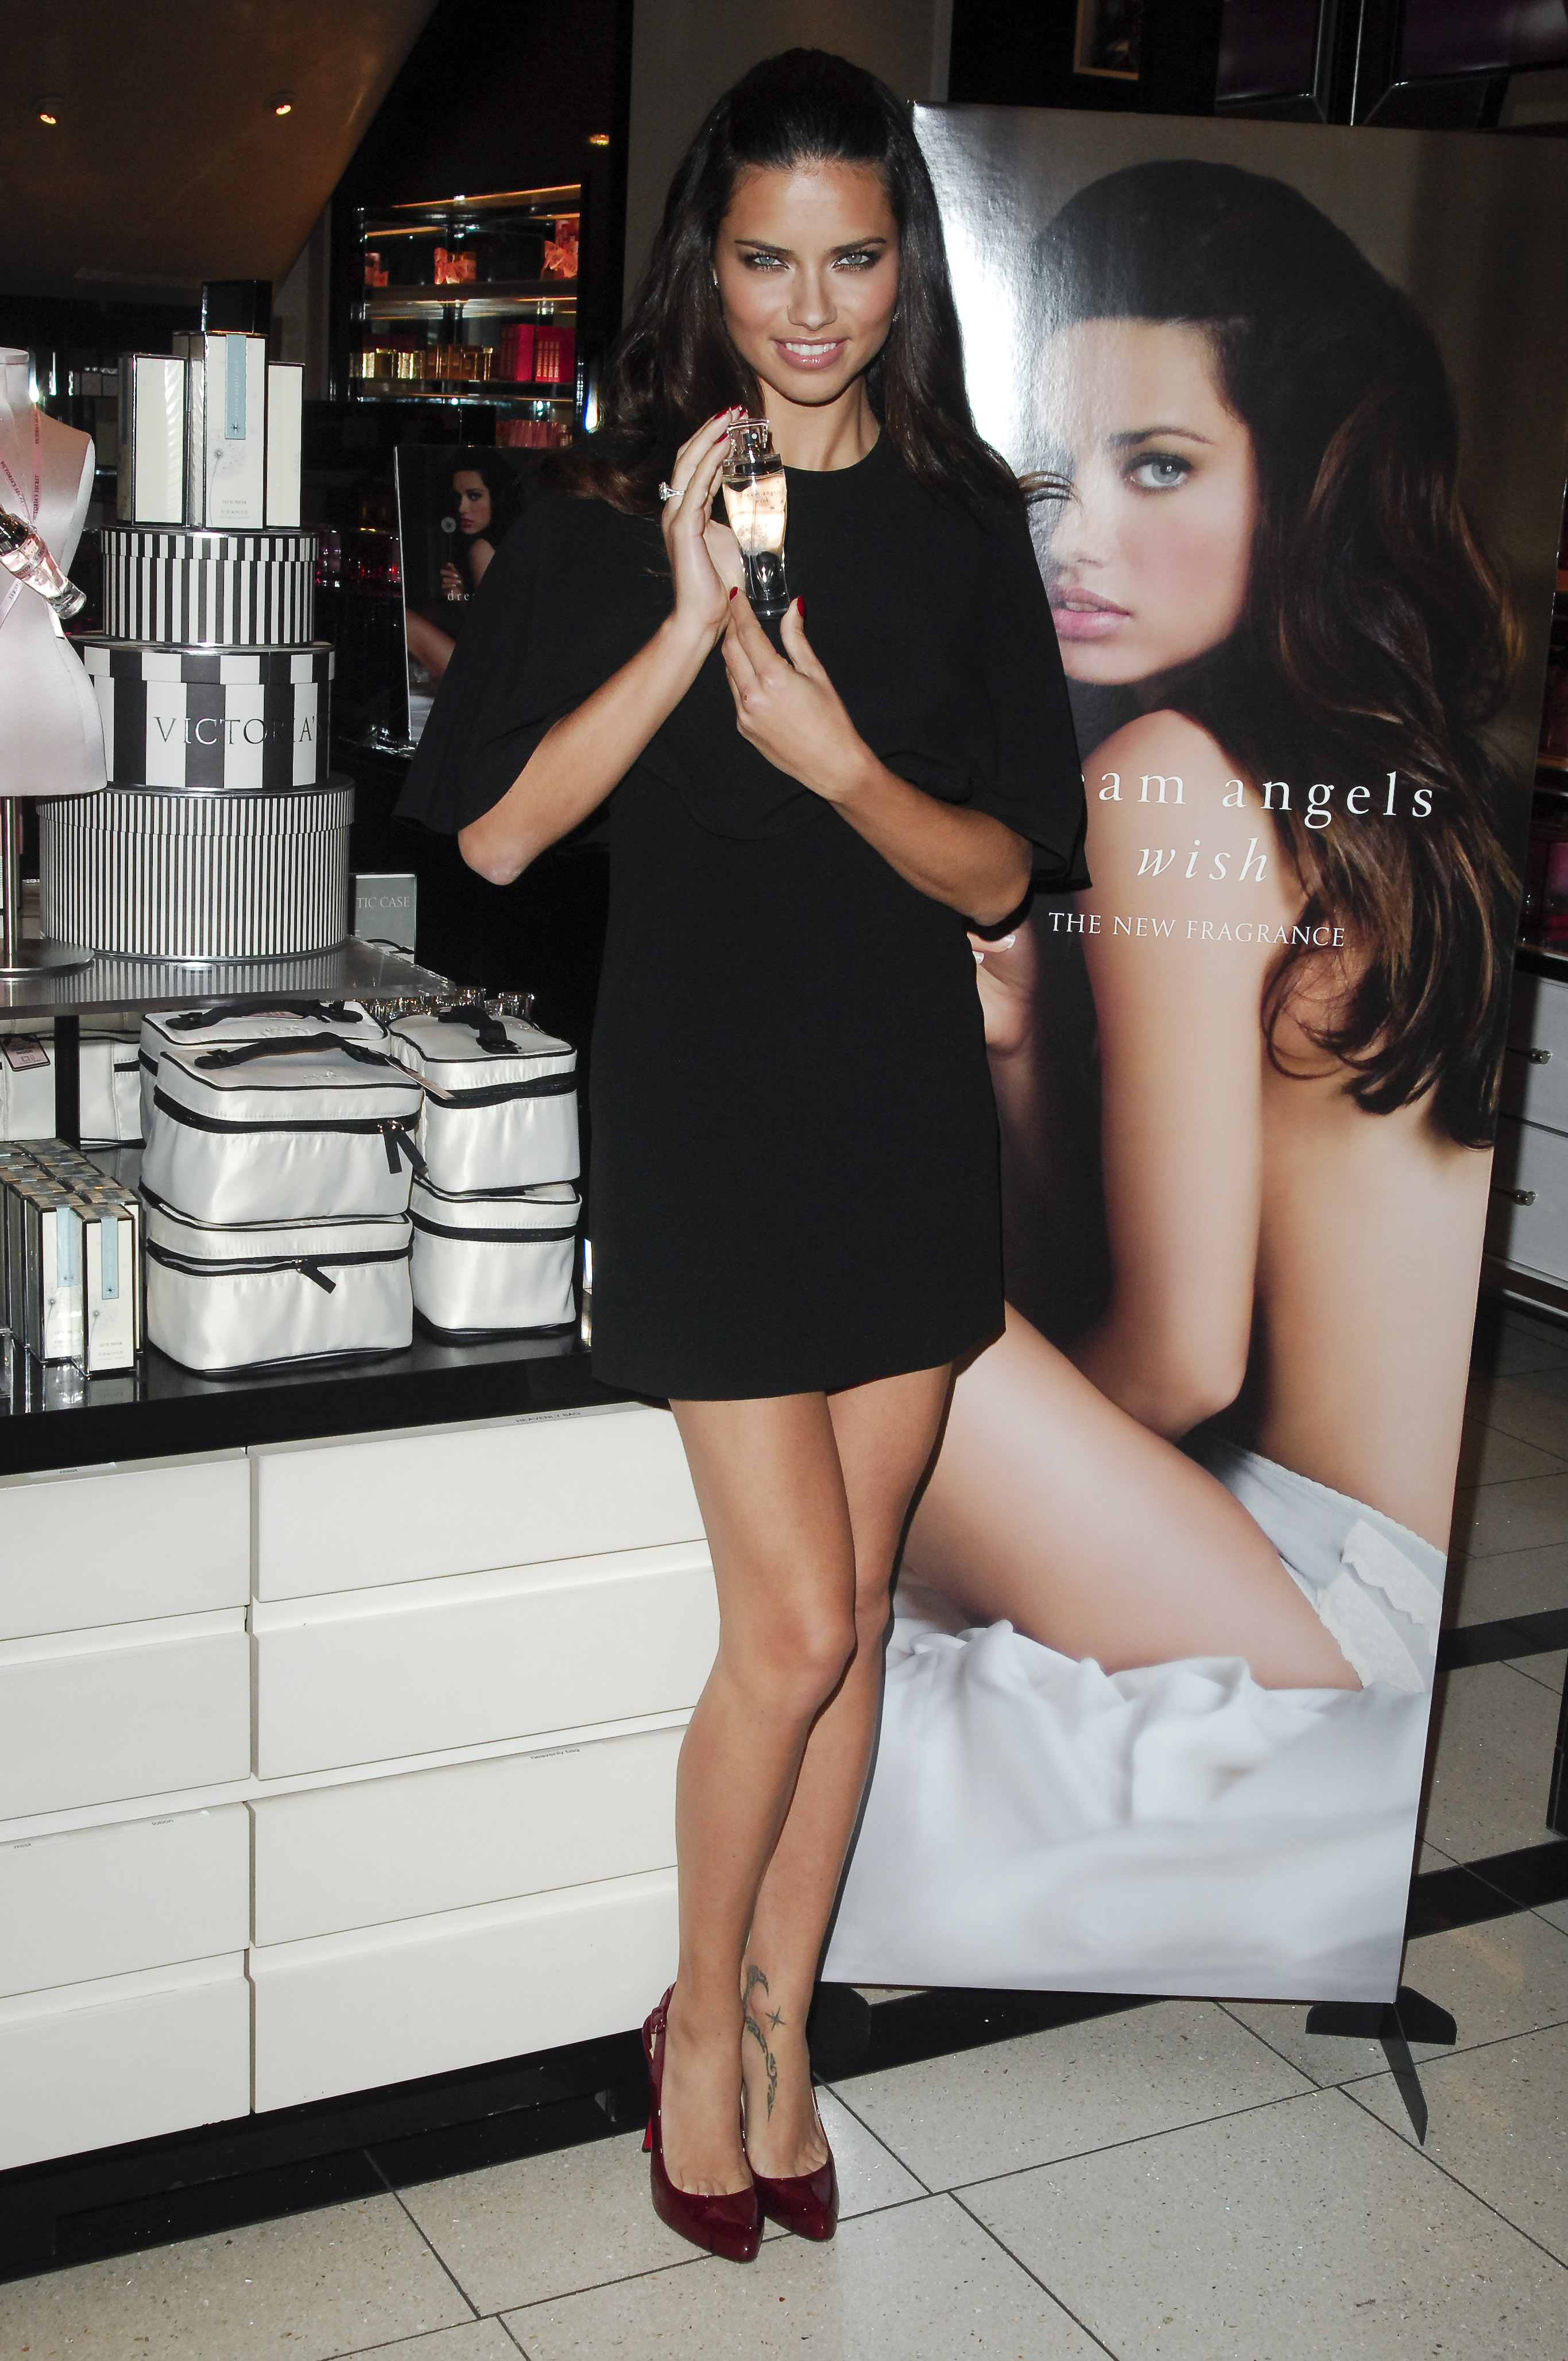 55175_Celebutopia-Adriana_Lima_launches_fragrance_Dream_Angels_Wish_at_Victoria1s_Secret_Herald_Square_Store_in_New_York_City-13_122_542lo.jpg